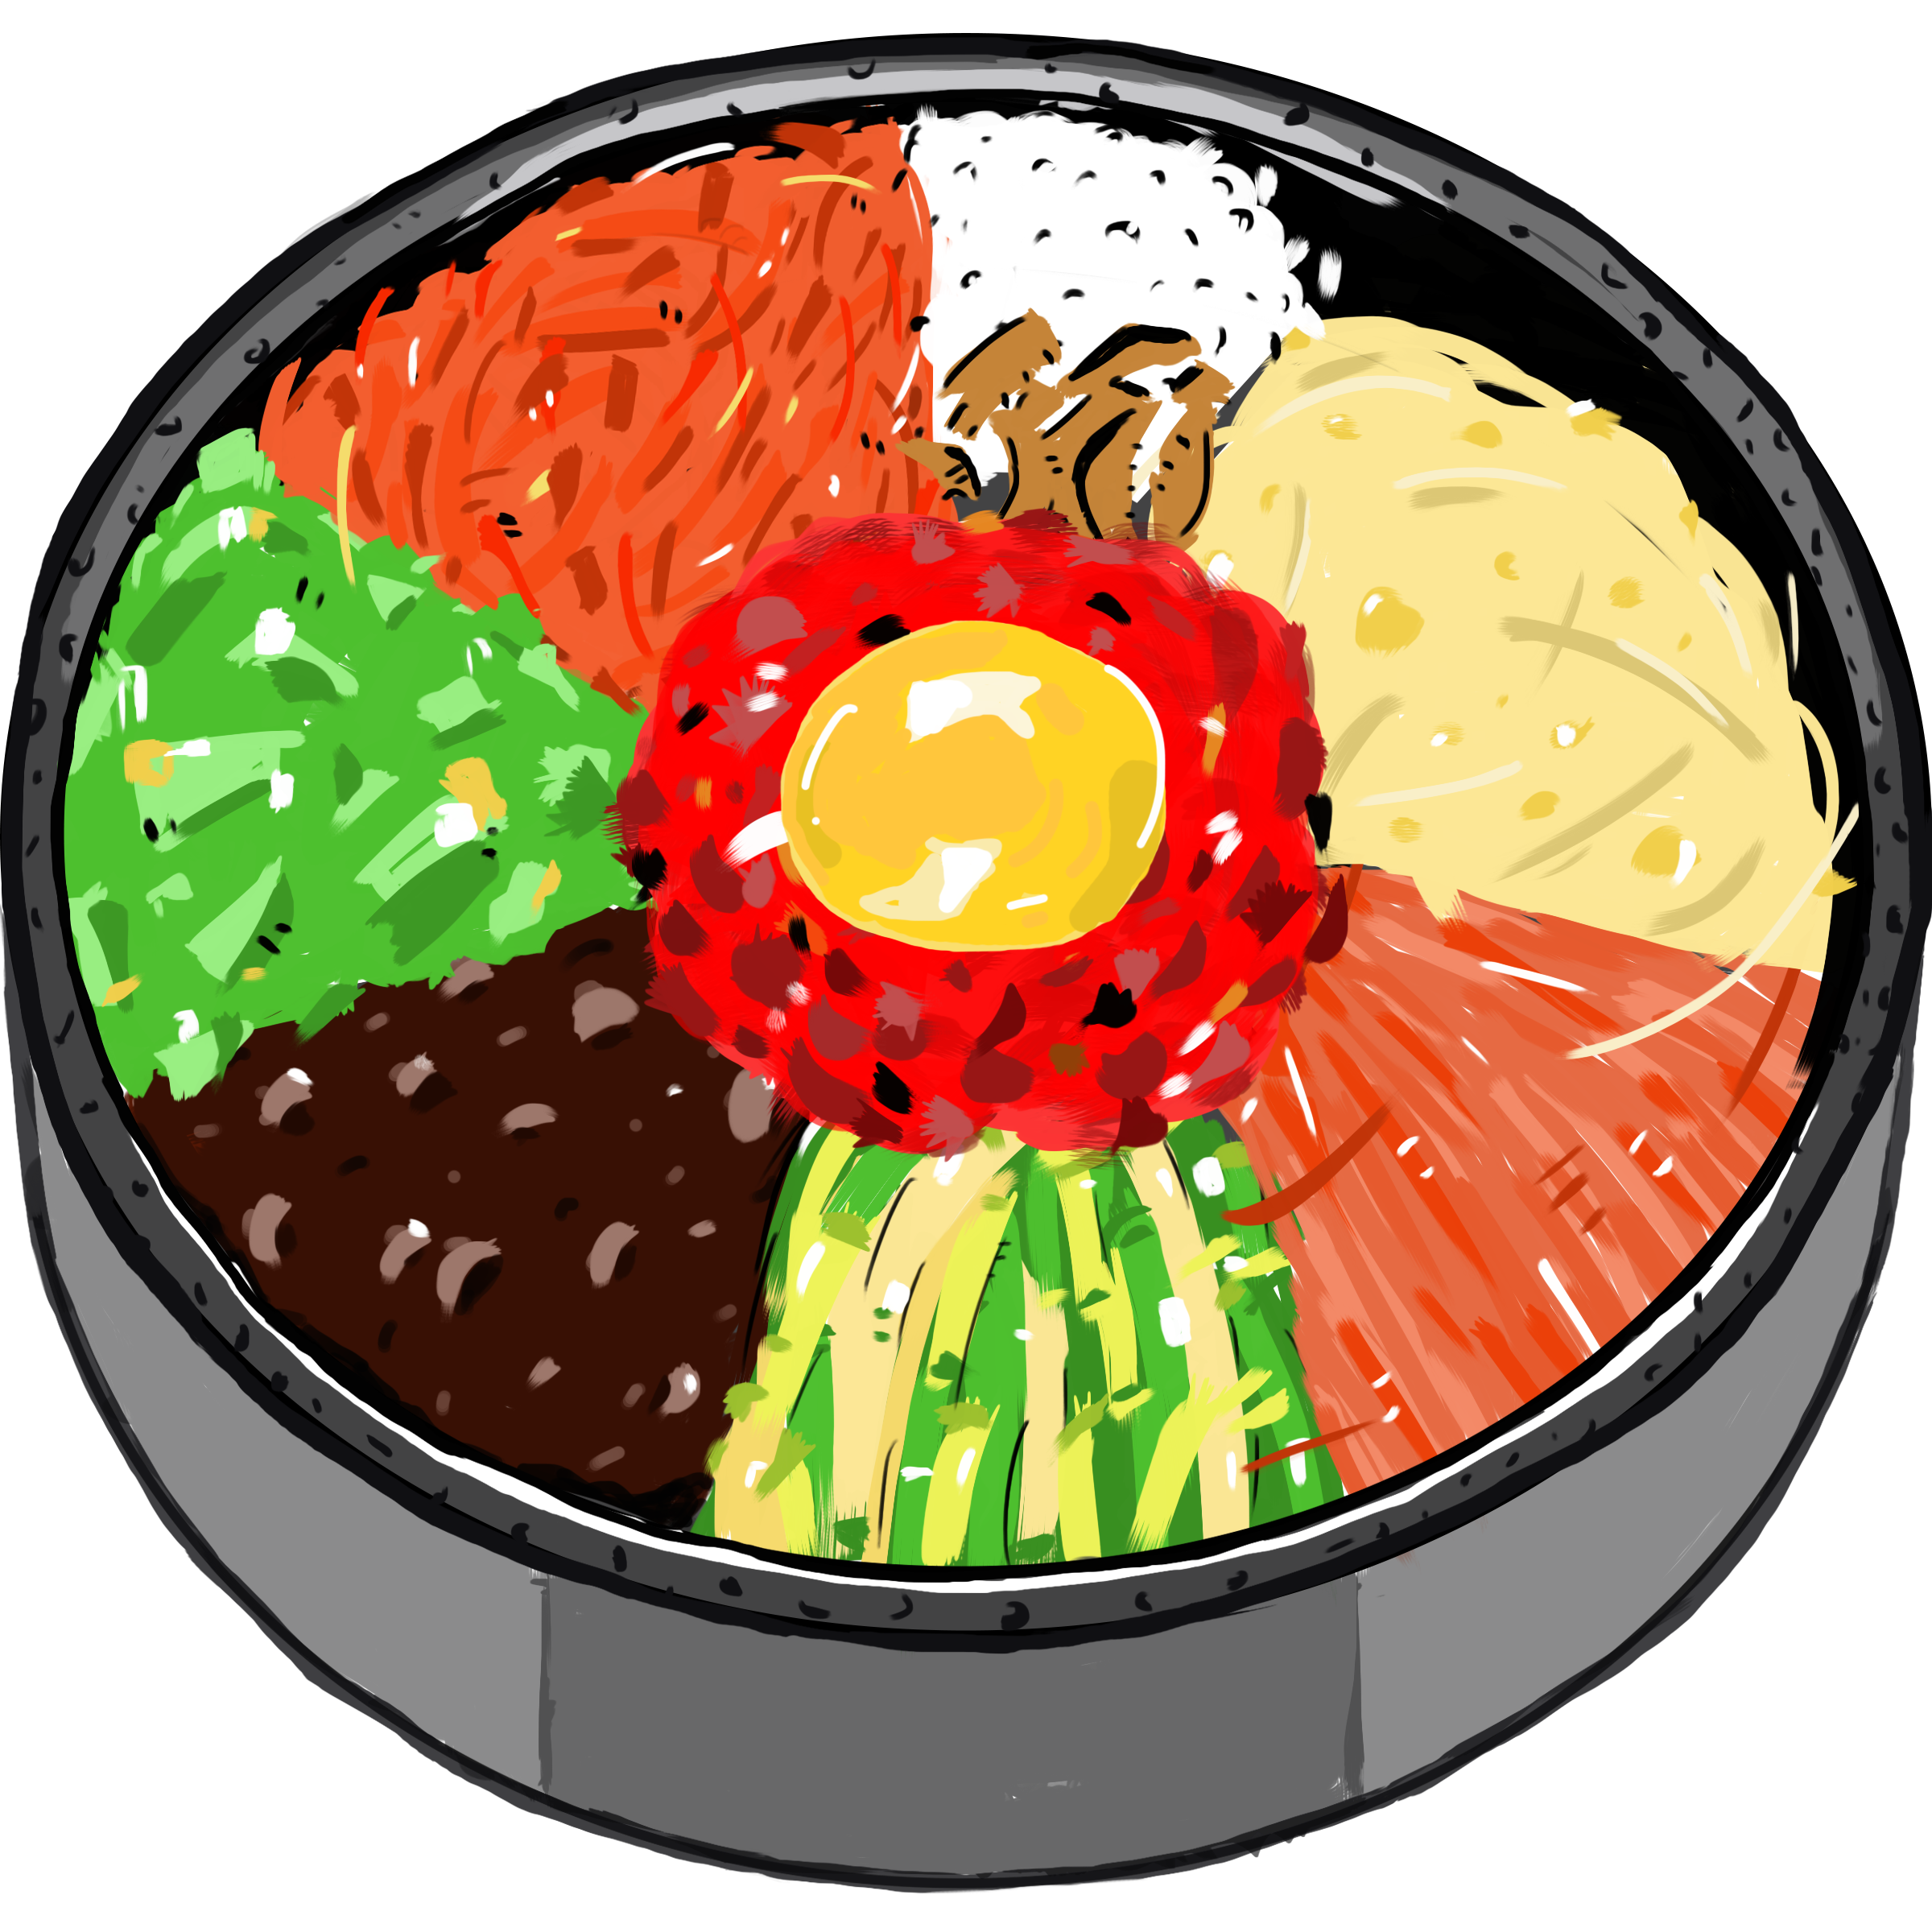 Fish meal clipart picture free stock Bibimbap Korean cuisine Food Fish Clip art - rice bowl 2400*2400 ... picture free stock